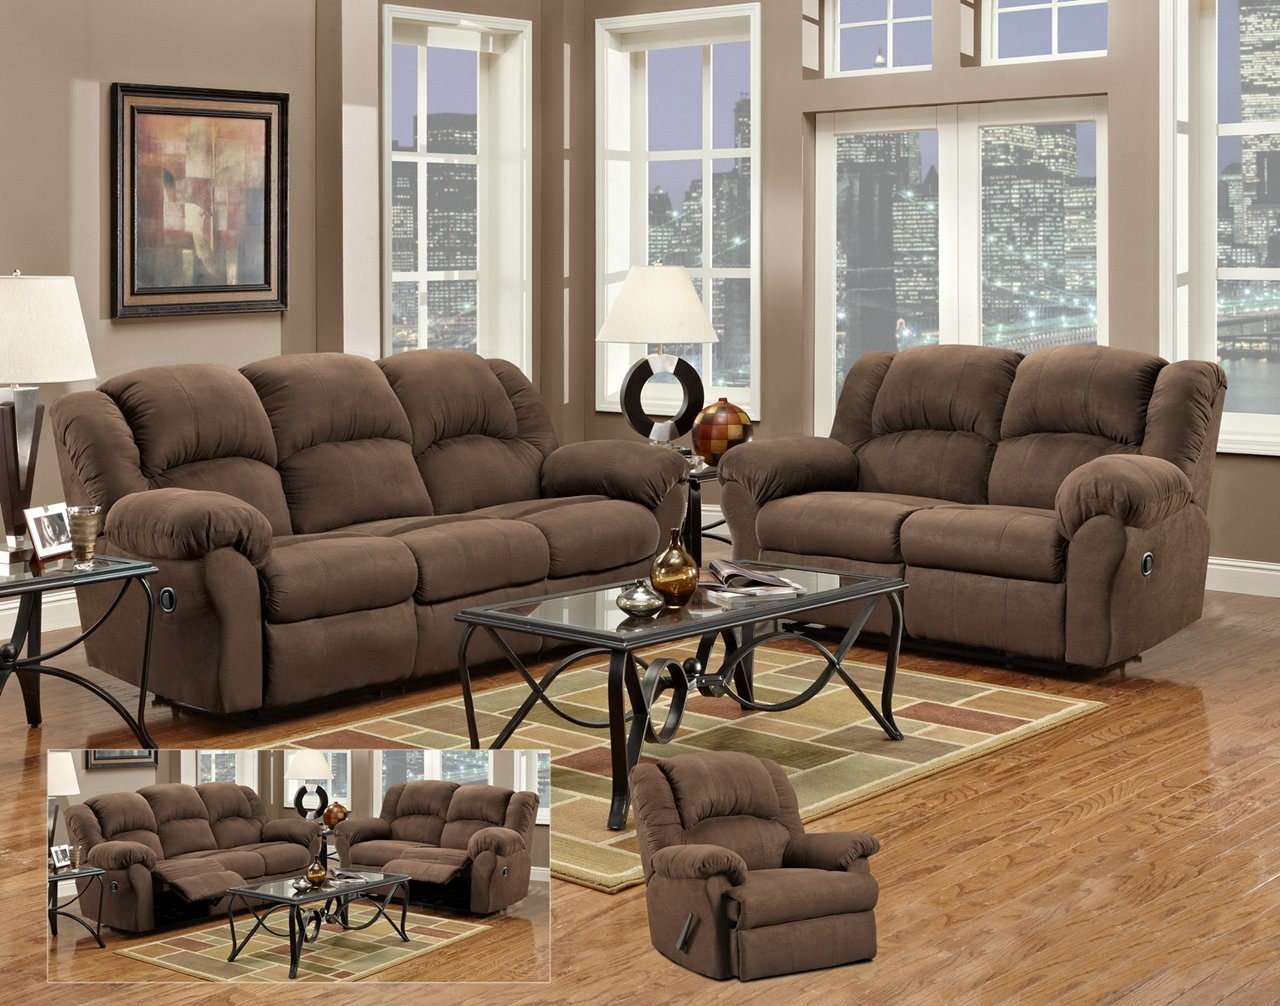 Texas Furniture Outlet